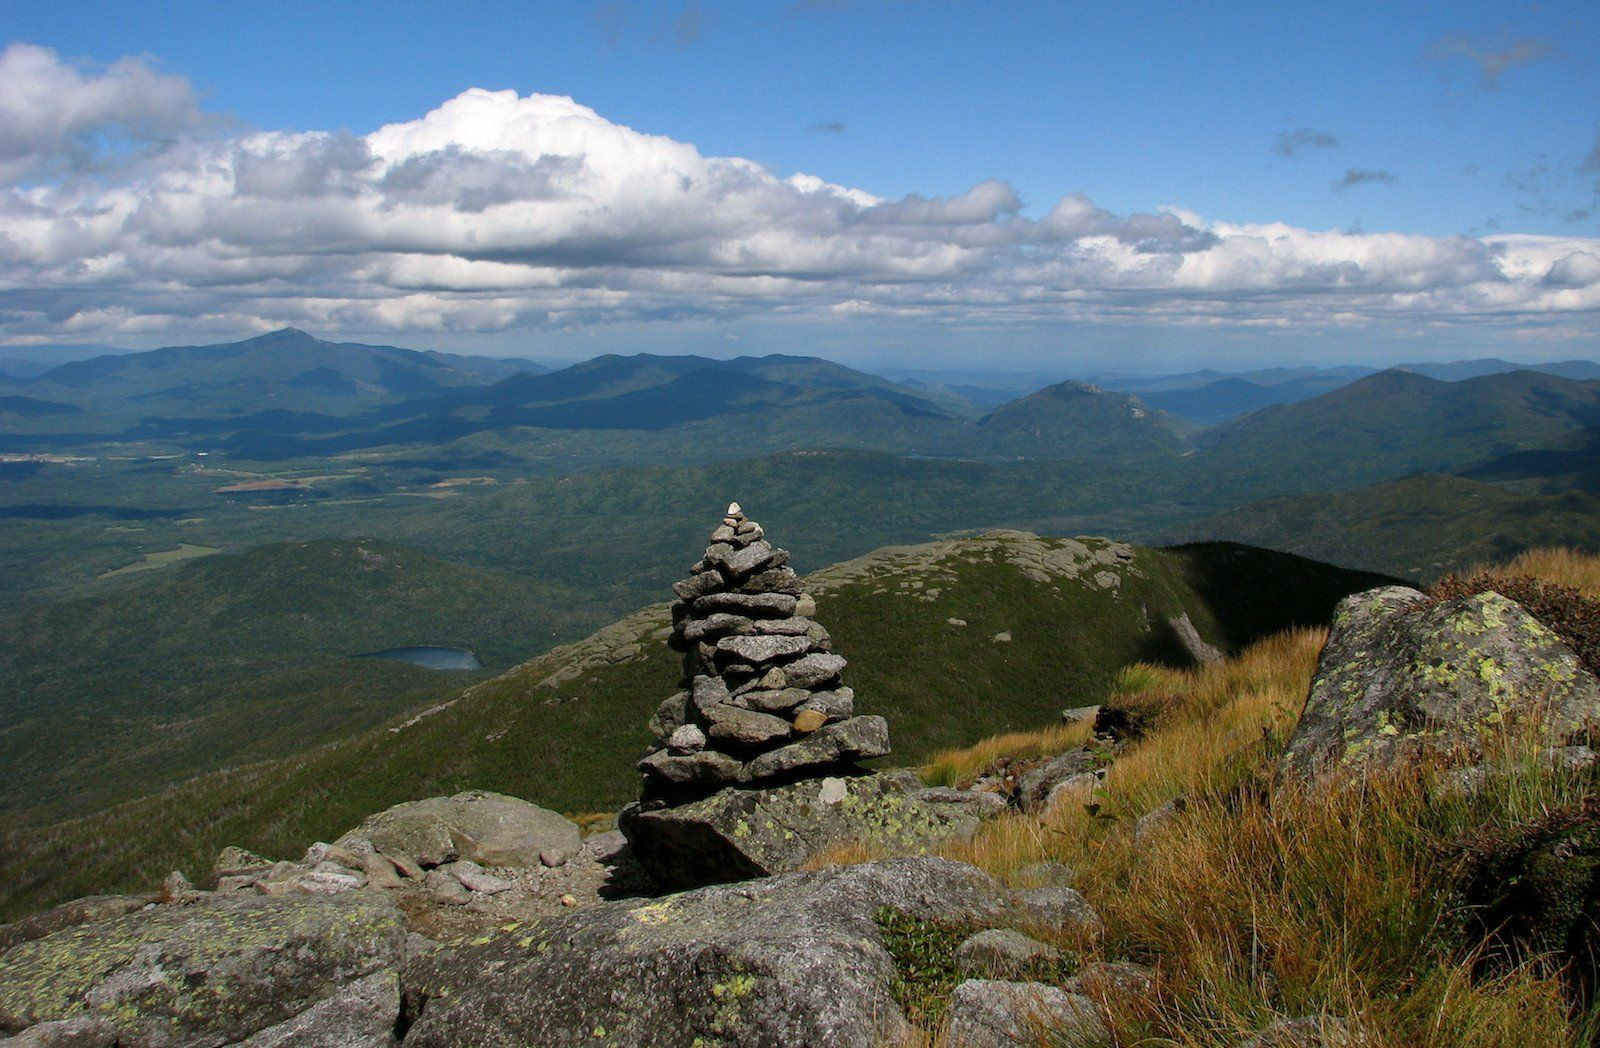 mountain view in the High Peaks Wilderness Area of NY